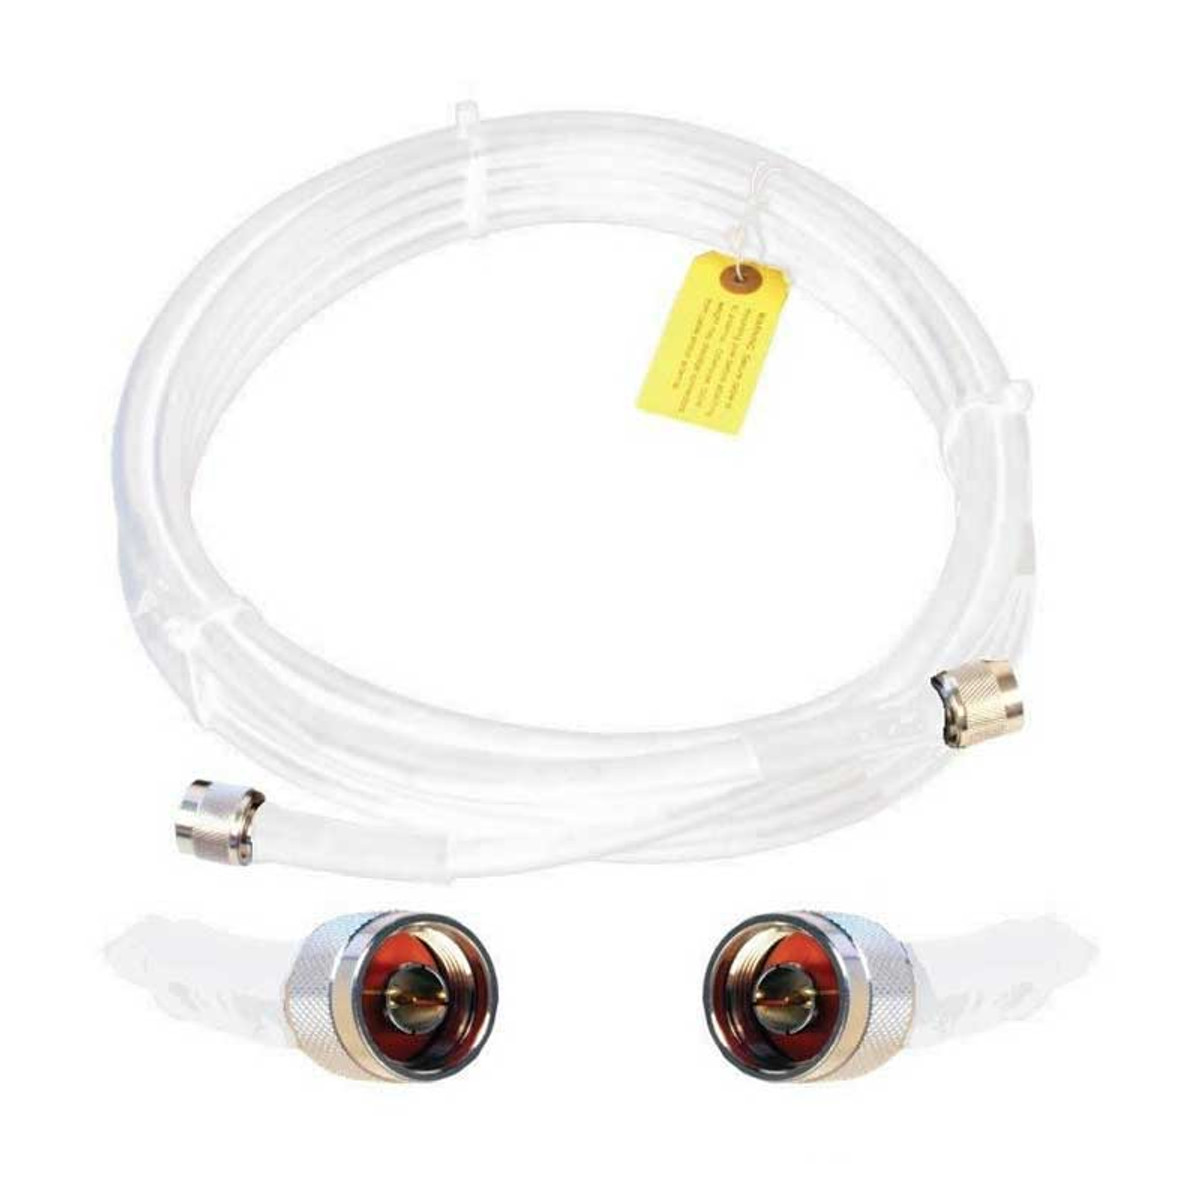 Wilson 952410 10-Foot WILSON400 Ultra Low Loss Coaxial Cable N Male ''Î'''_to N Male White, detail